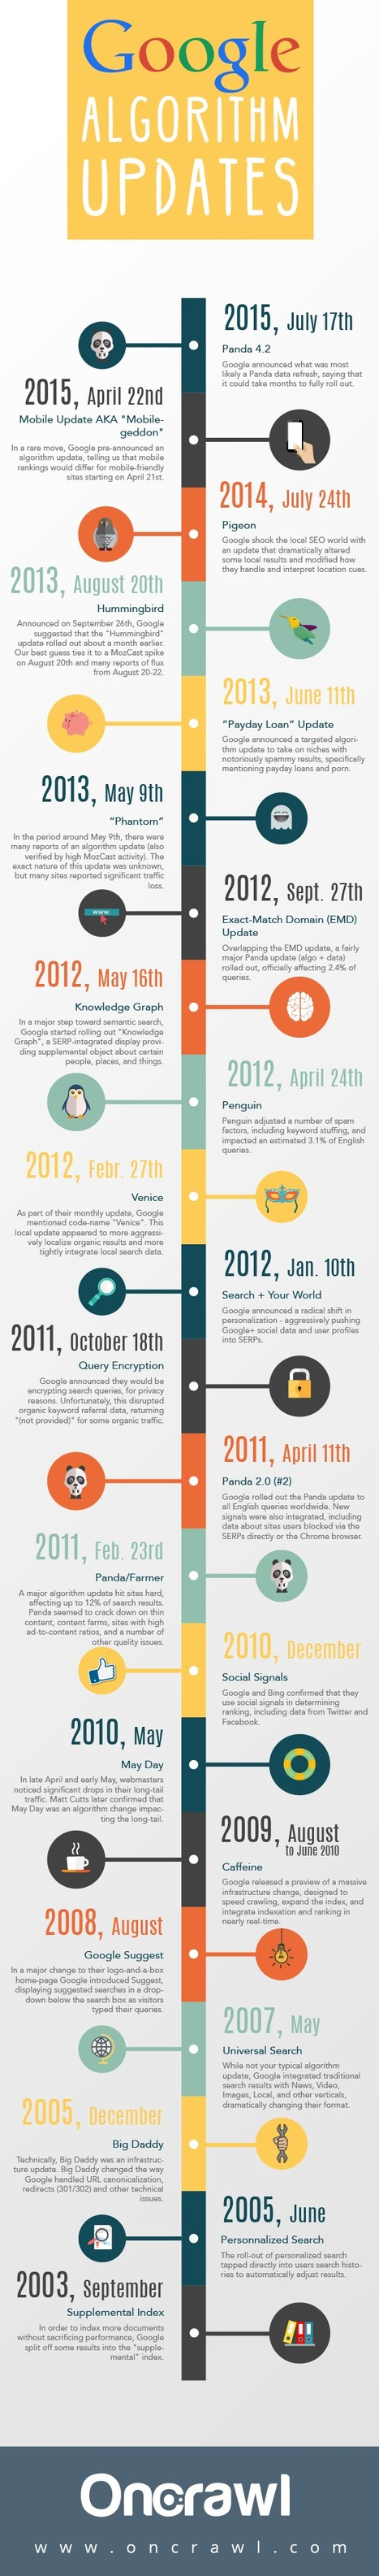 Google Algorithm Updates - 2003 to 2015 #Infographic | MarketingHits | Scoop.it